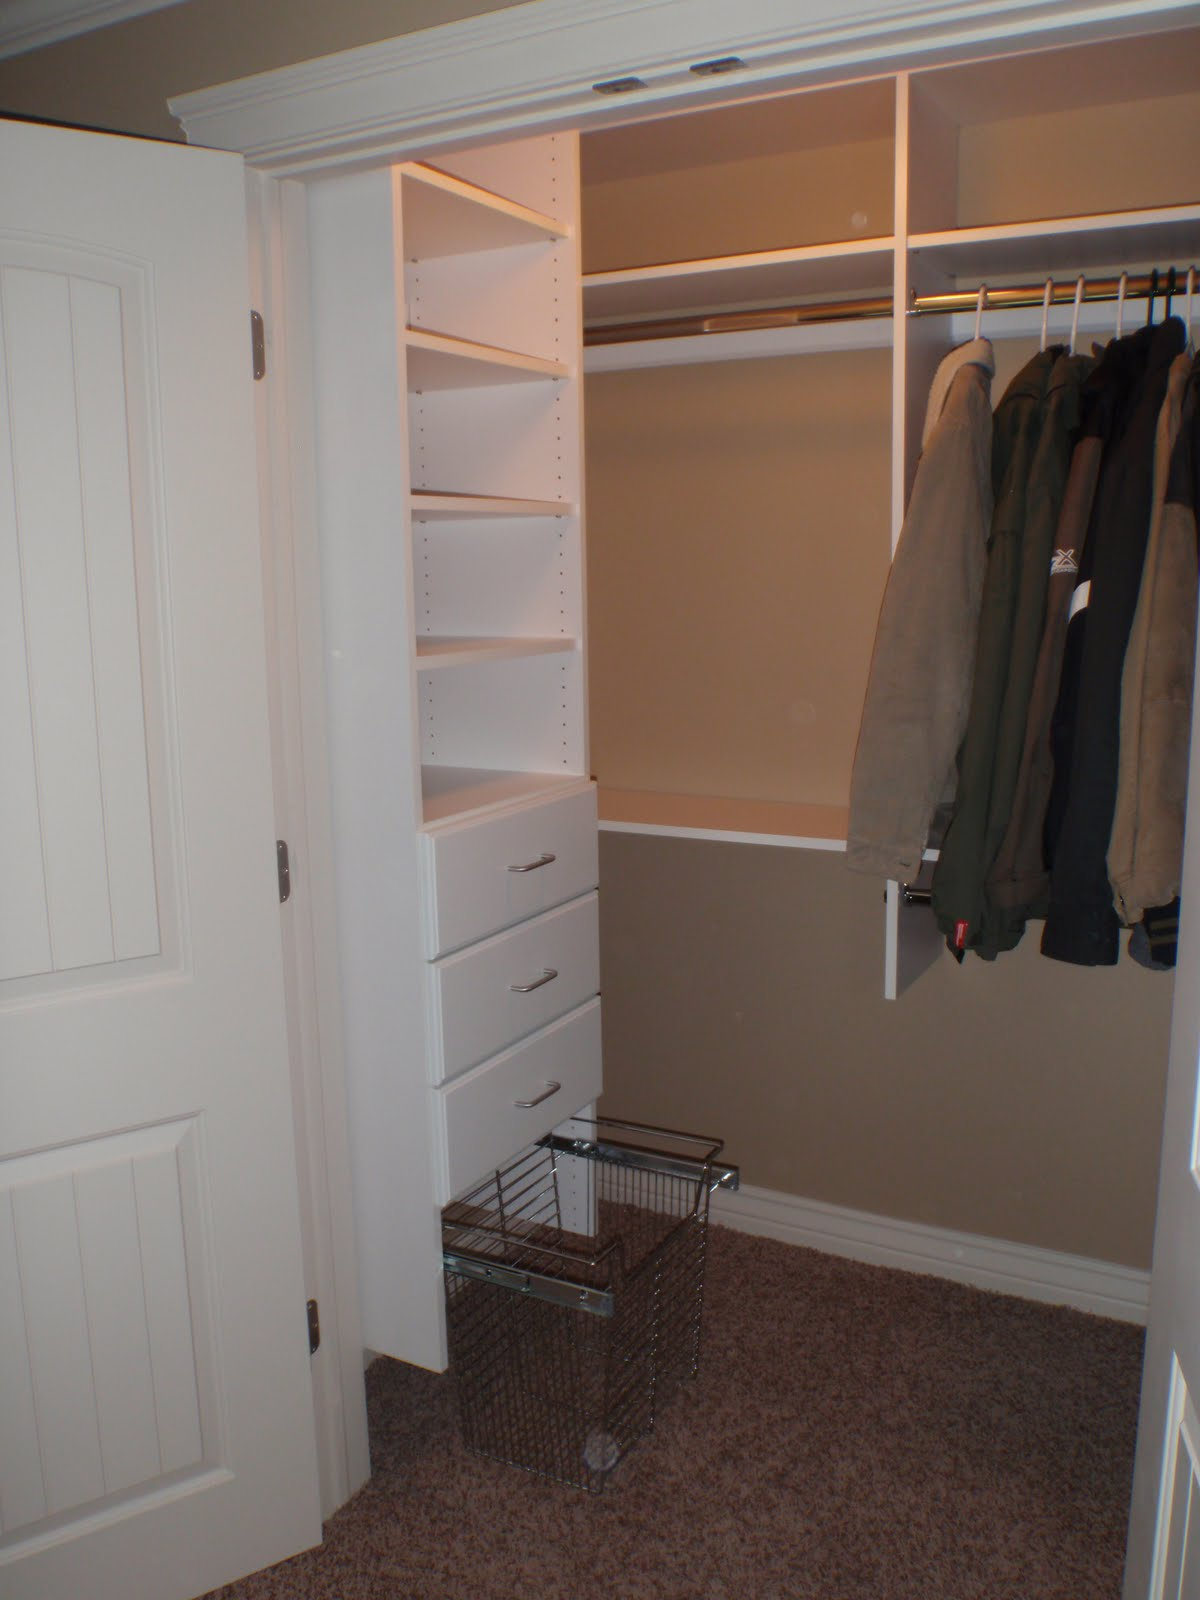 The Second Room Is Also Large, And Has A Wall Shelf Along 2 Of The Walls.  It Has A Ceiling Fan, Phone Jack And Cable Hookups While The Spacious Closet  Has ...